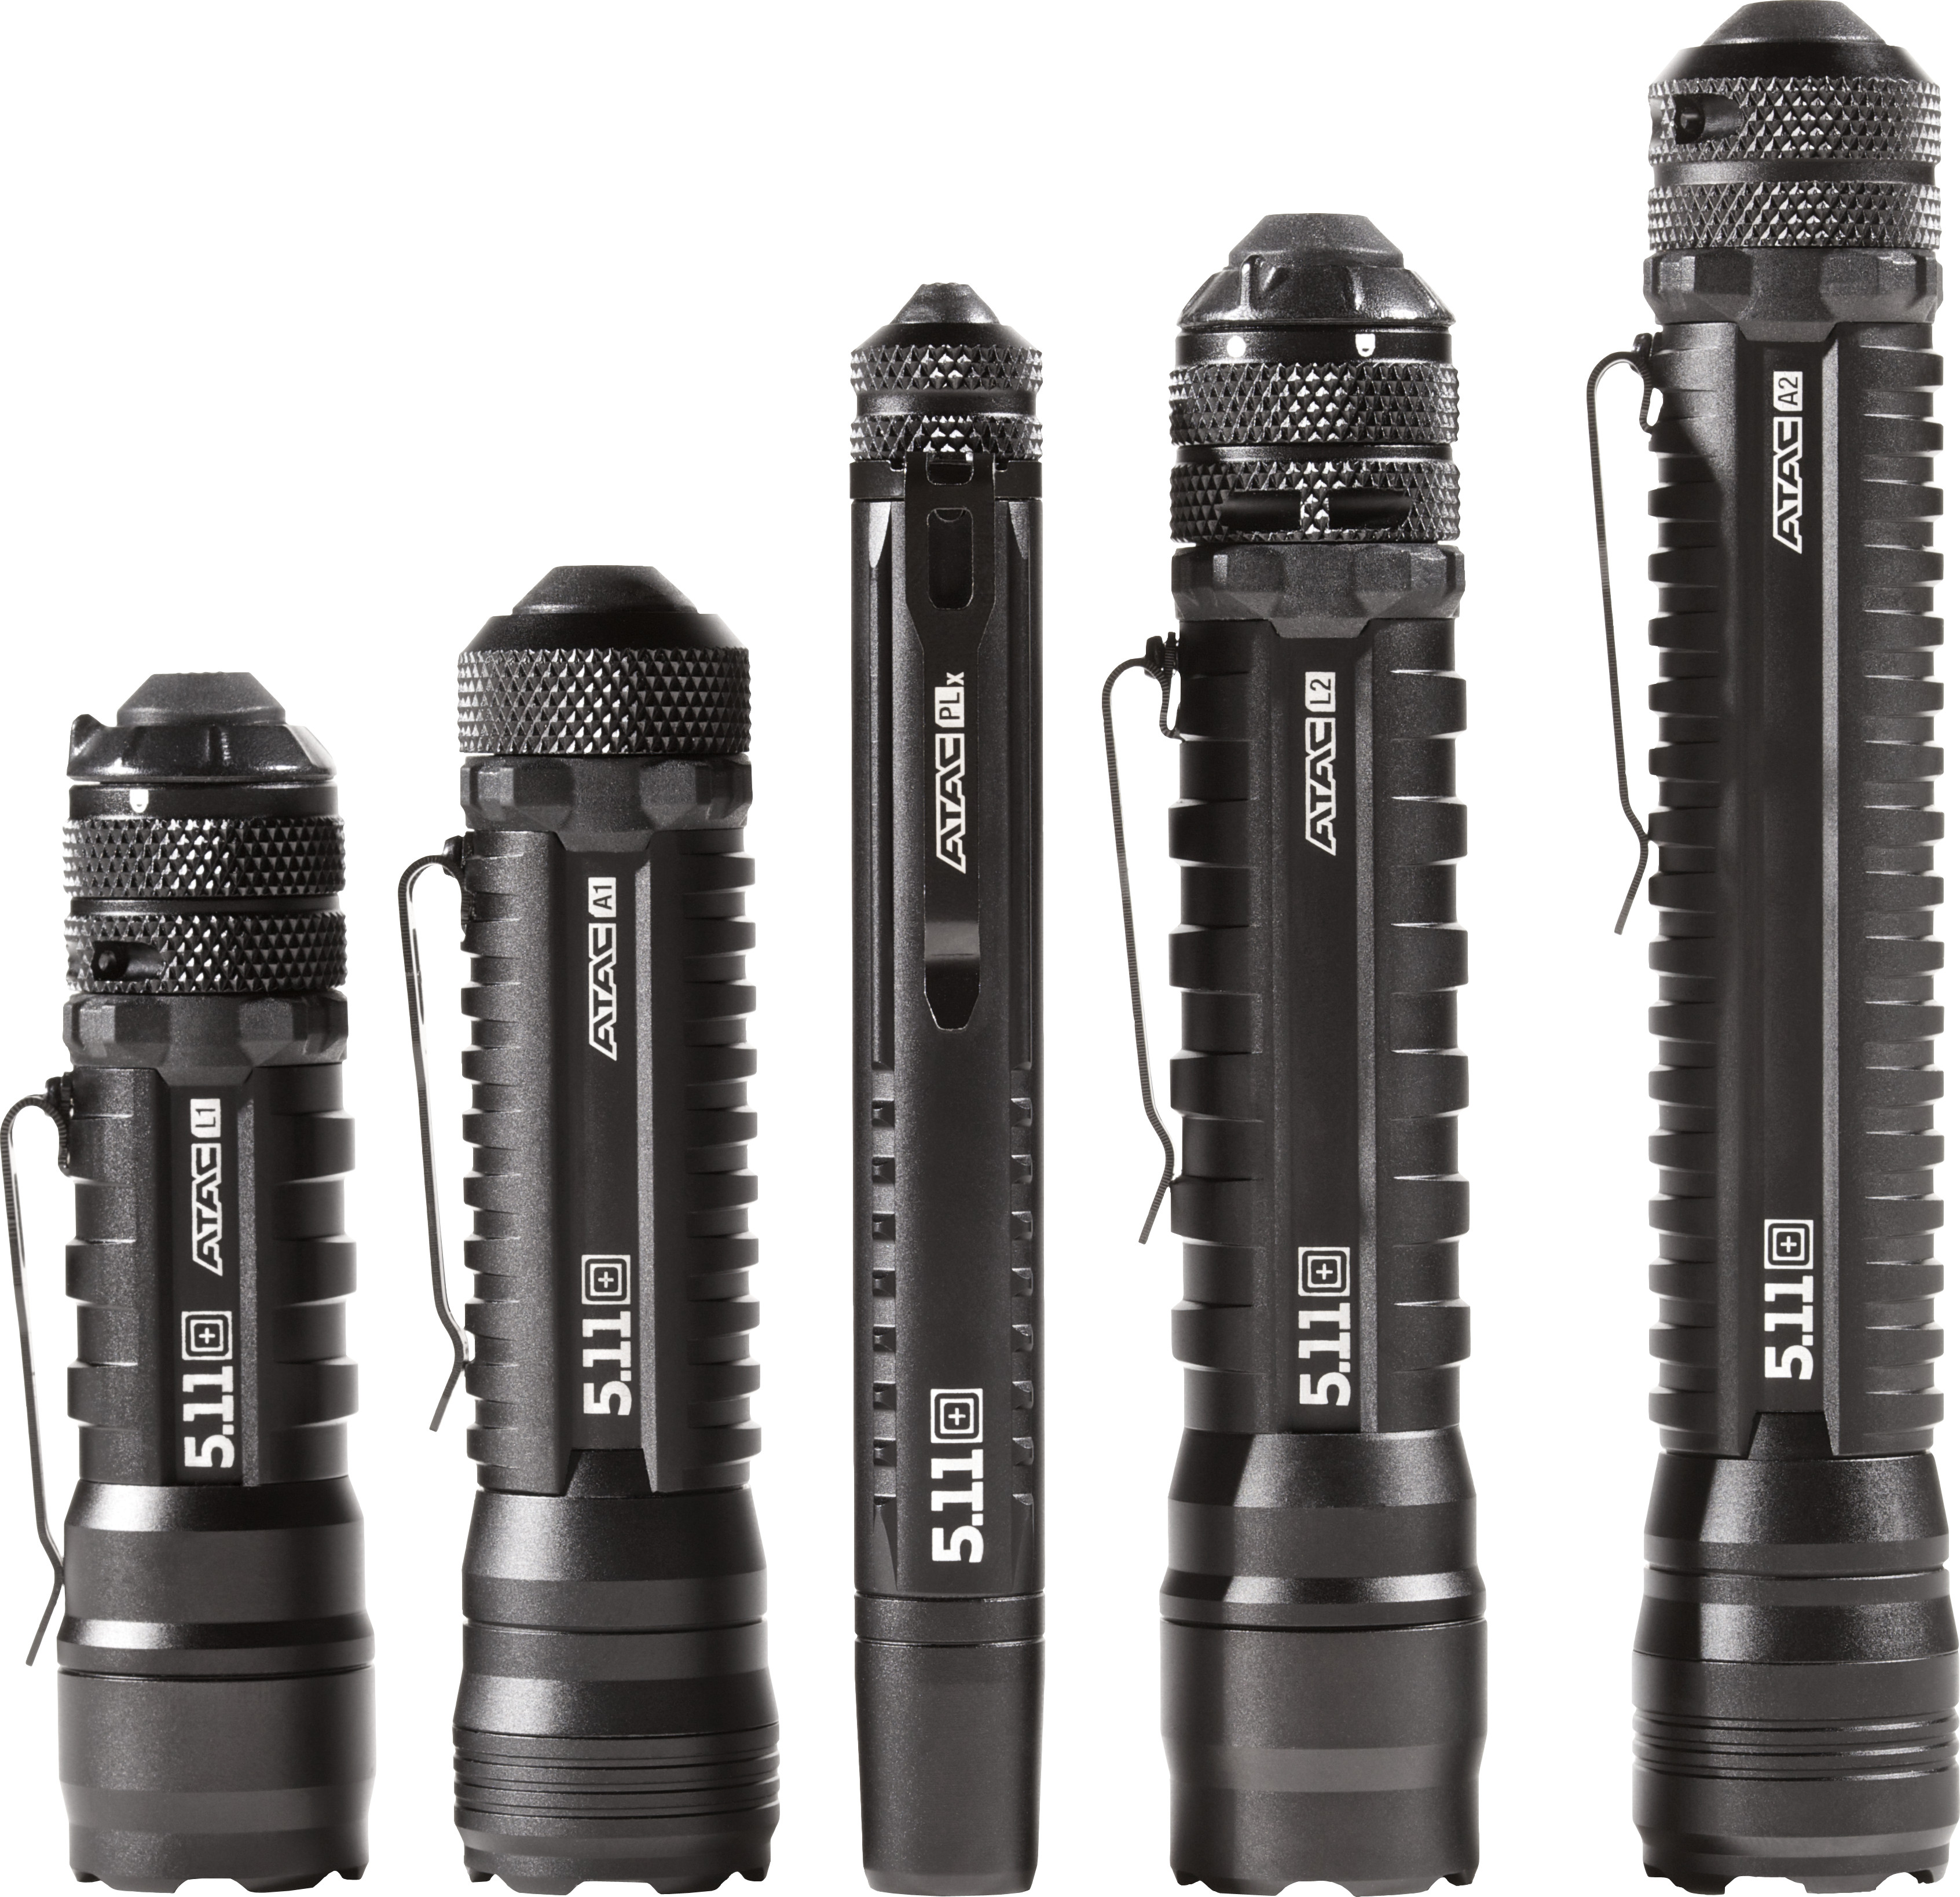 5.11 Tacticalr - Introducing the new ATACT line of battery-operated tactical flashlights